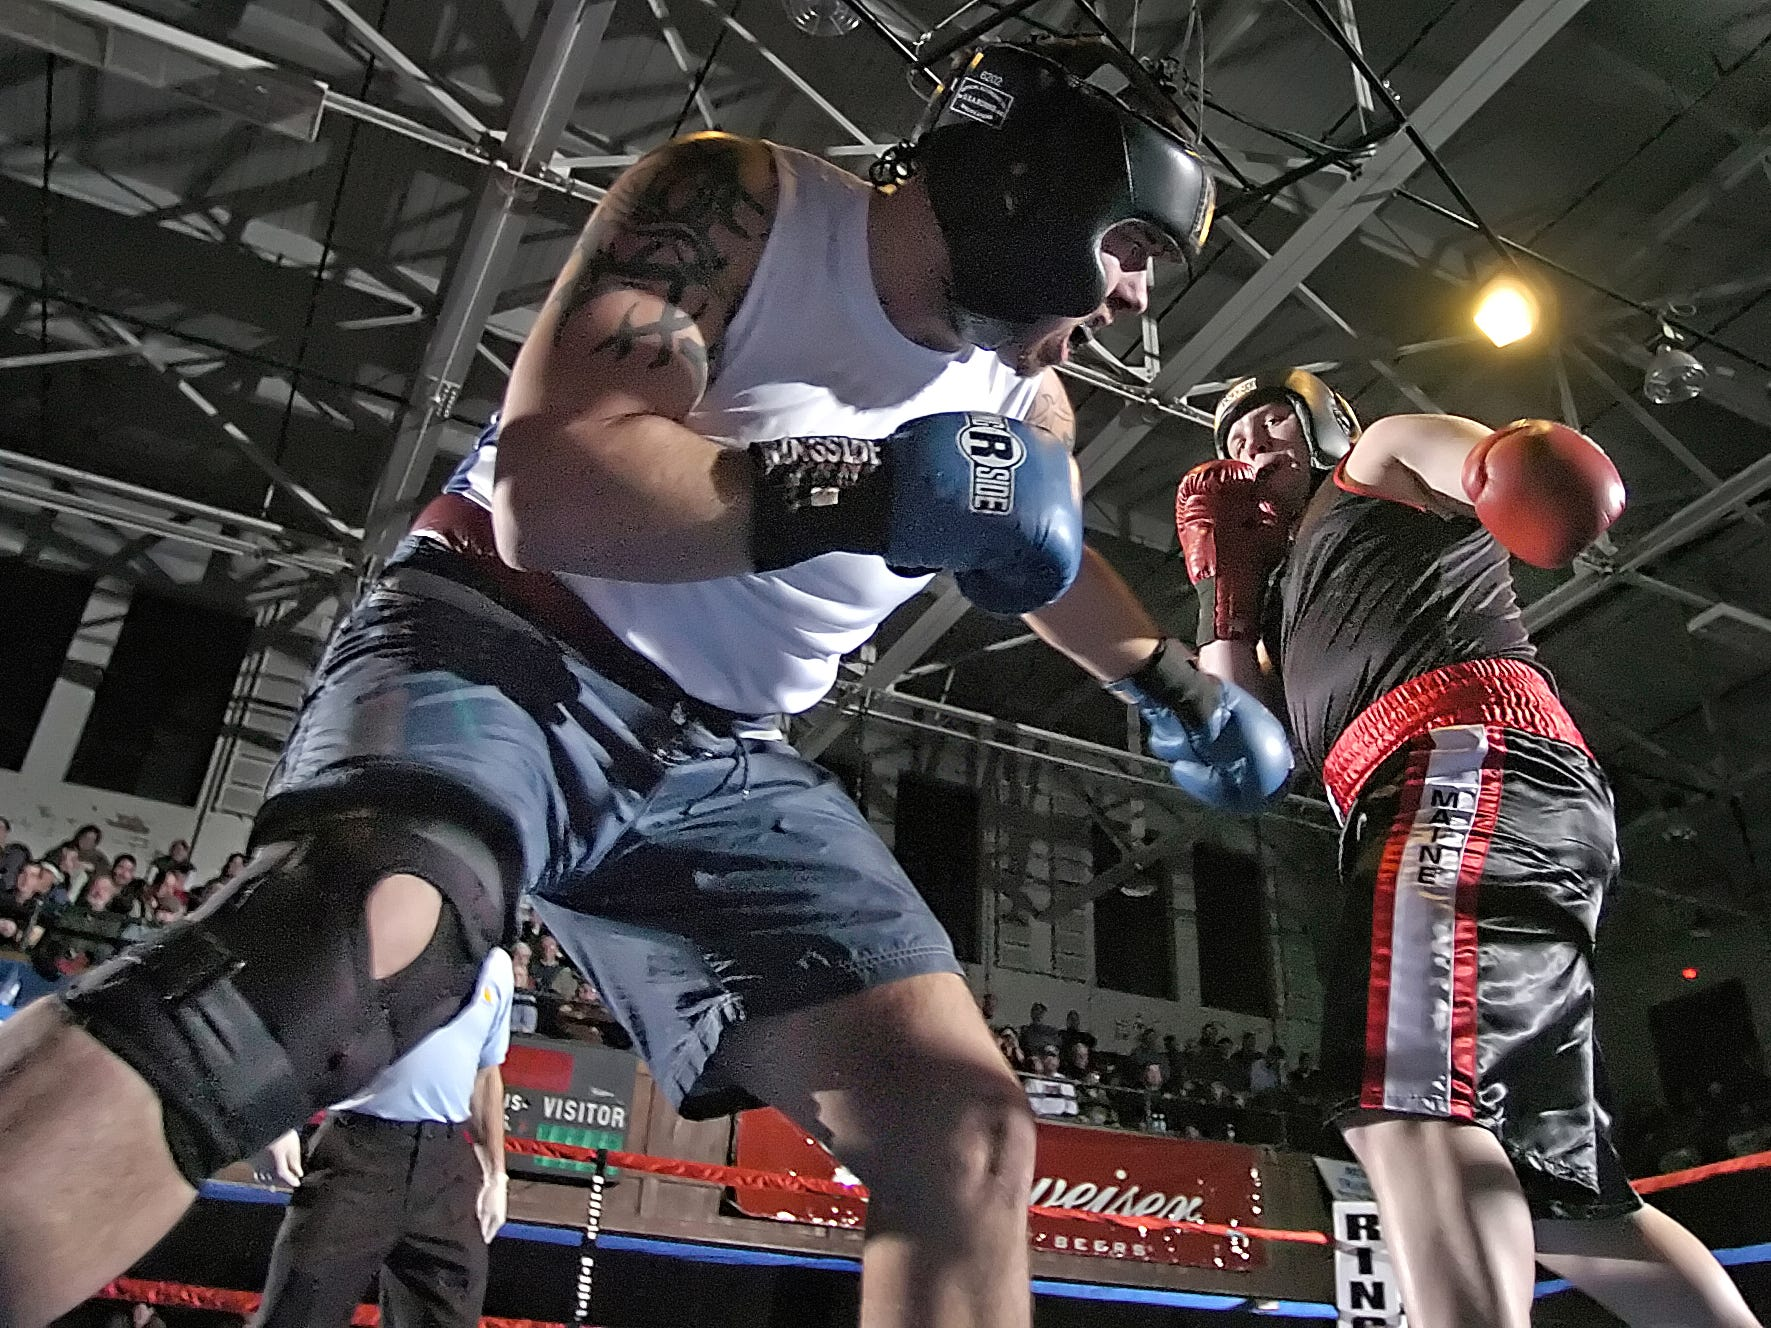 Miles Lovell of Claremont Boxing (left) ducks away from Aaron Emmons of Portland Boxing in their super heavy weight bout at Memorial Auditorium in Burlington on Saturday, February 11, 2006.